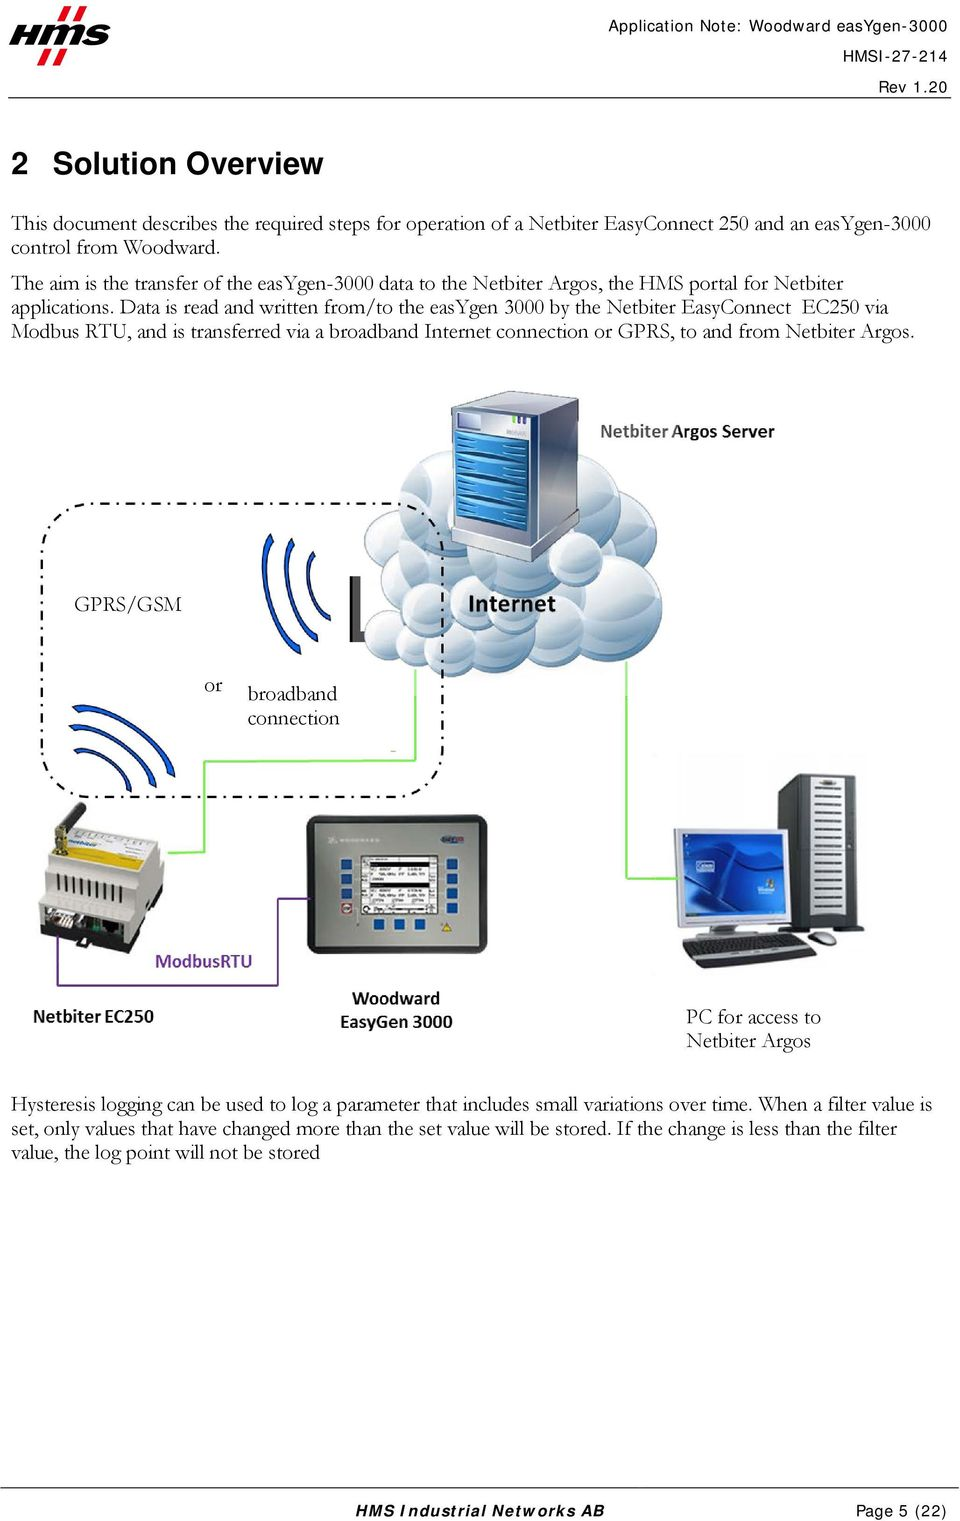 Data is read and written from/to the easygen 3000 by the Netbiter EasyConnect EC250 via Modbus RTU, and is transferred via a broadband Internet connection or GPRS, to and from Netbiter Argos.